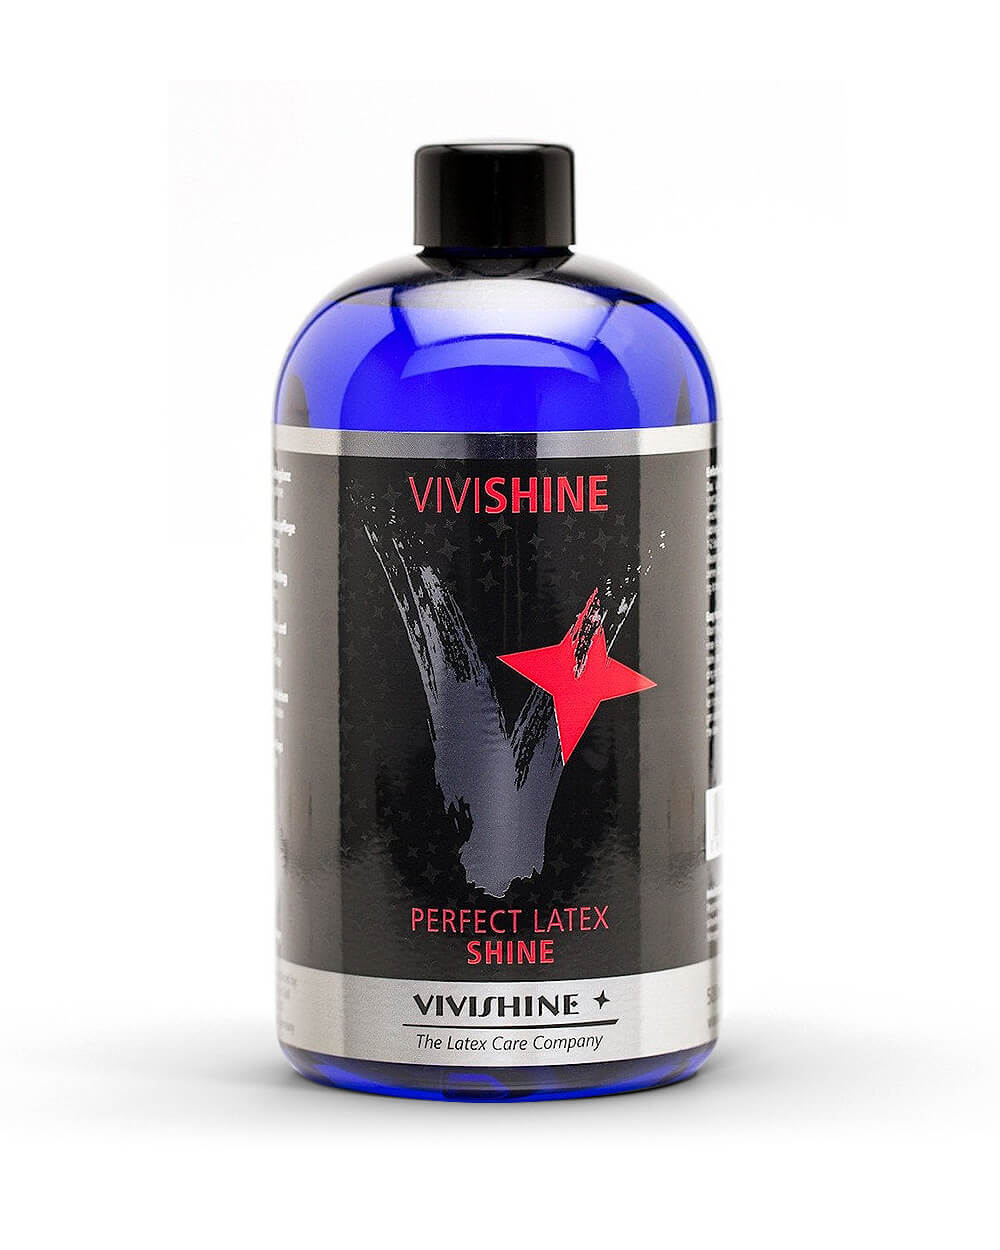 Vivishine XXL 500ml Bottle READY TO SHIP  IN STOCK ITEMS! - Vex Inc. | Latex Clothing